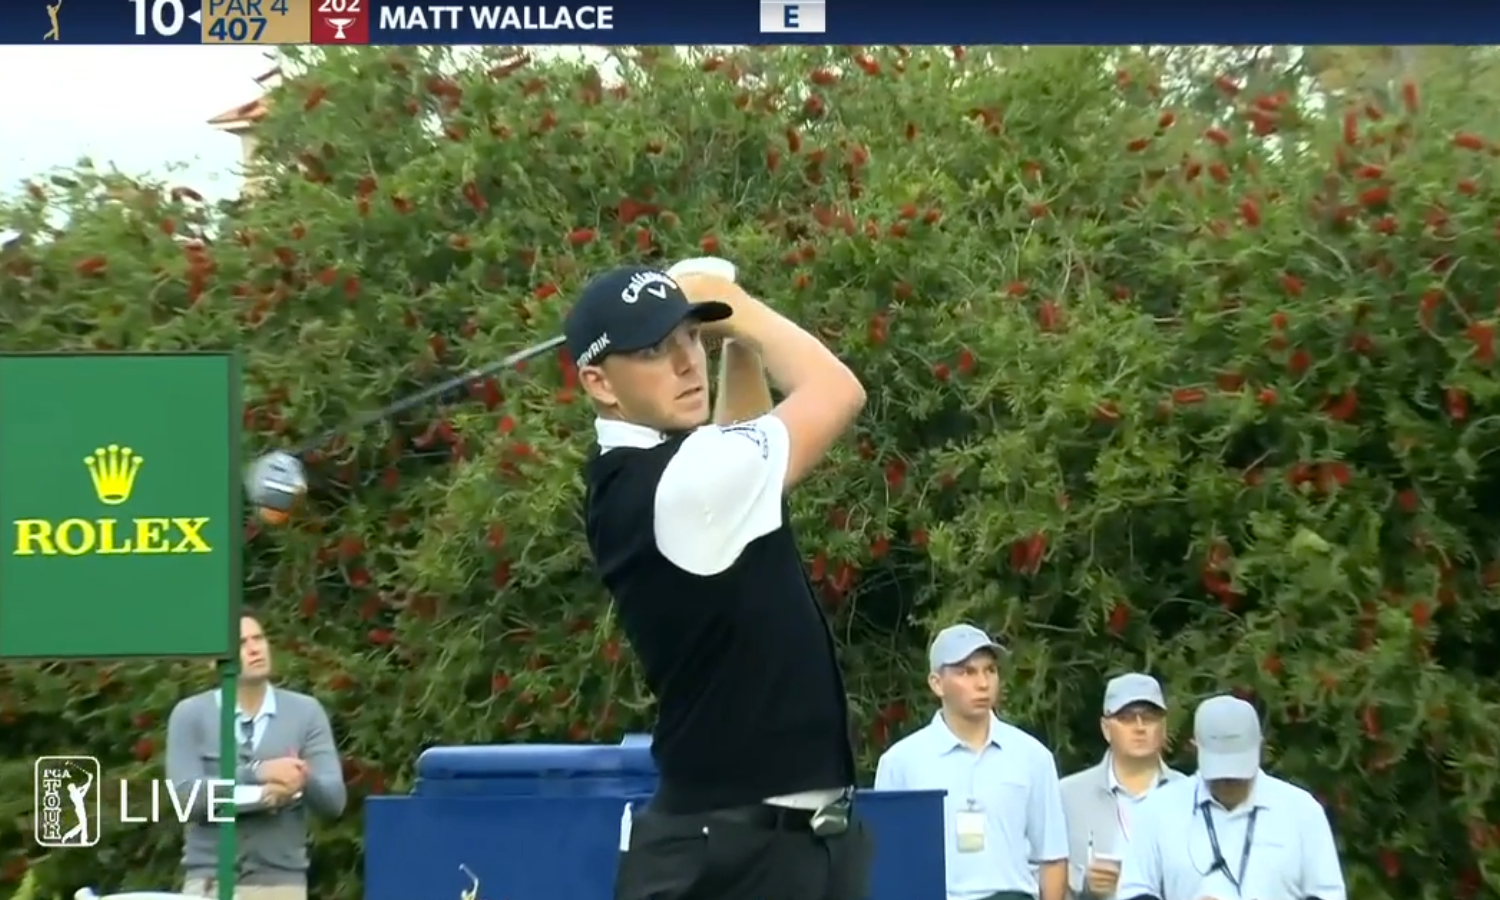 Photo of Matt Wallace